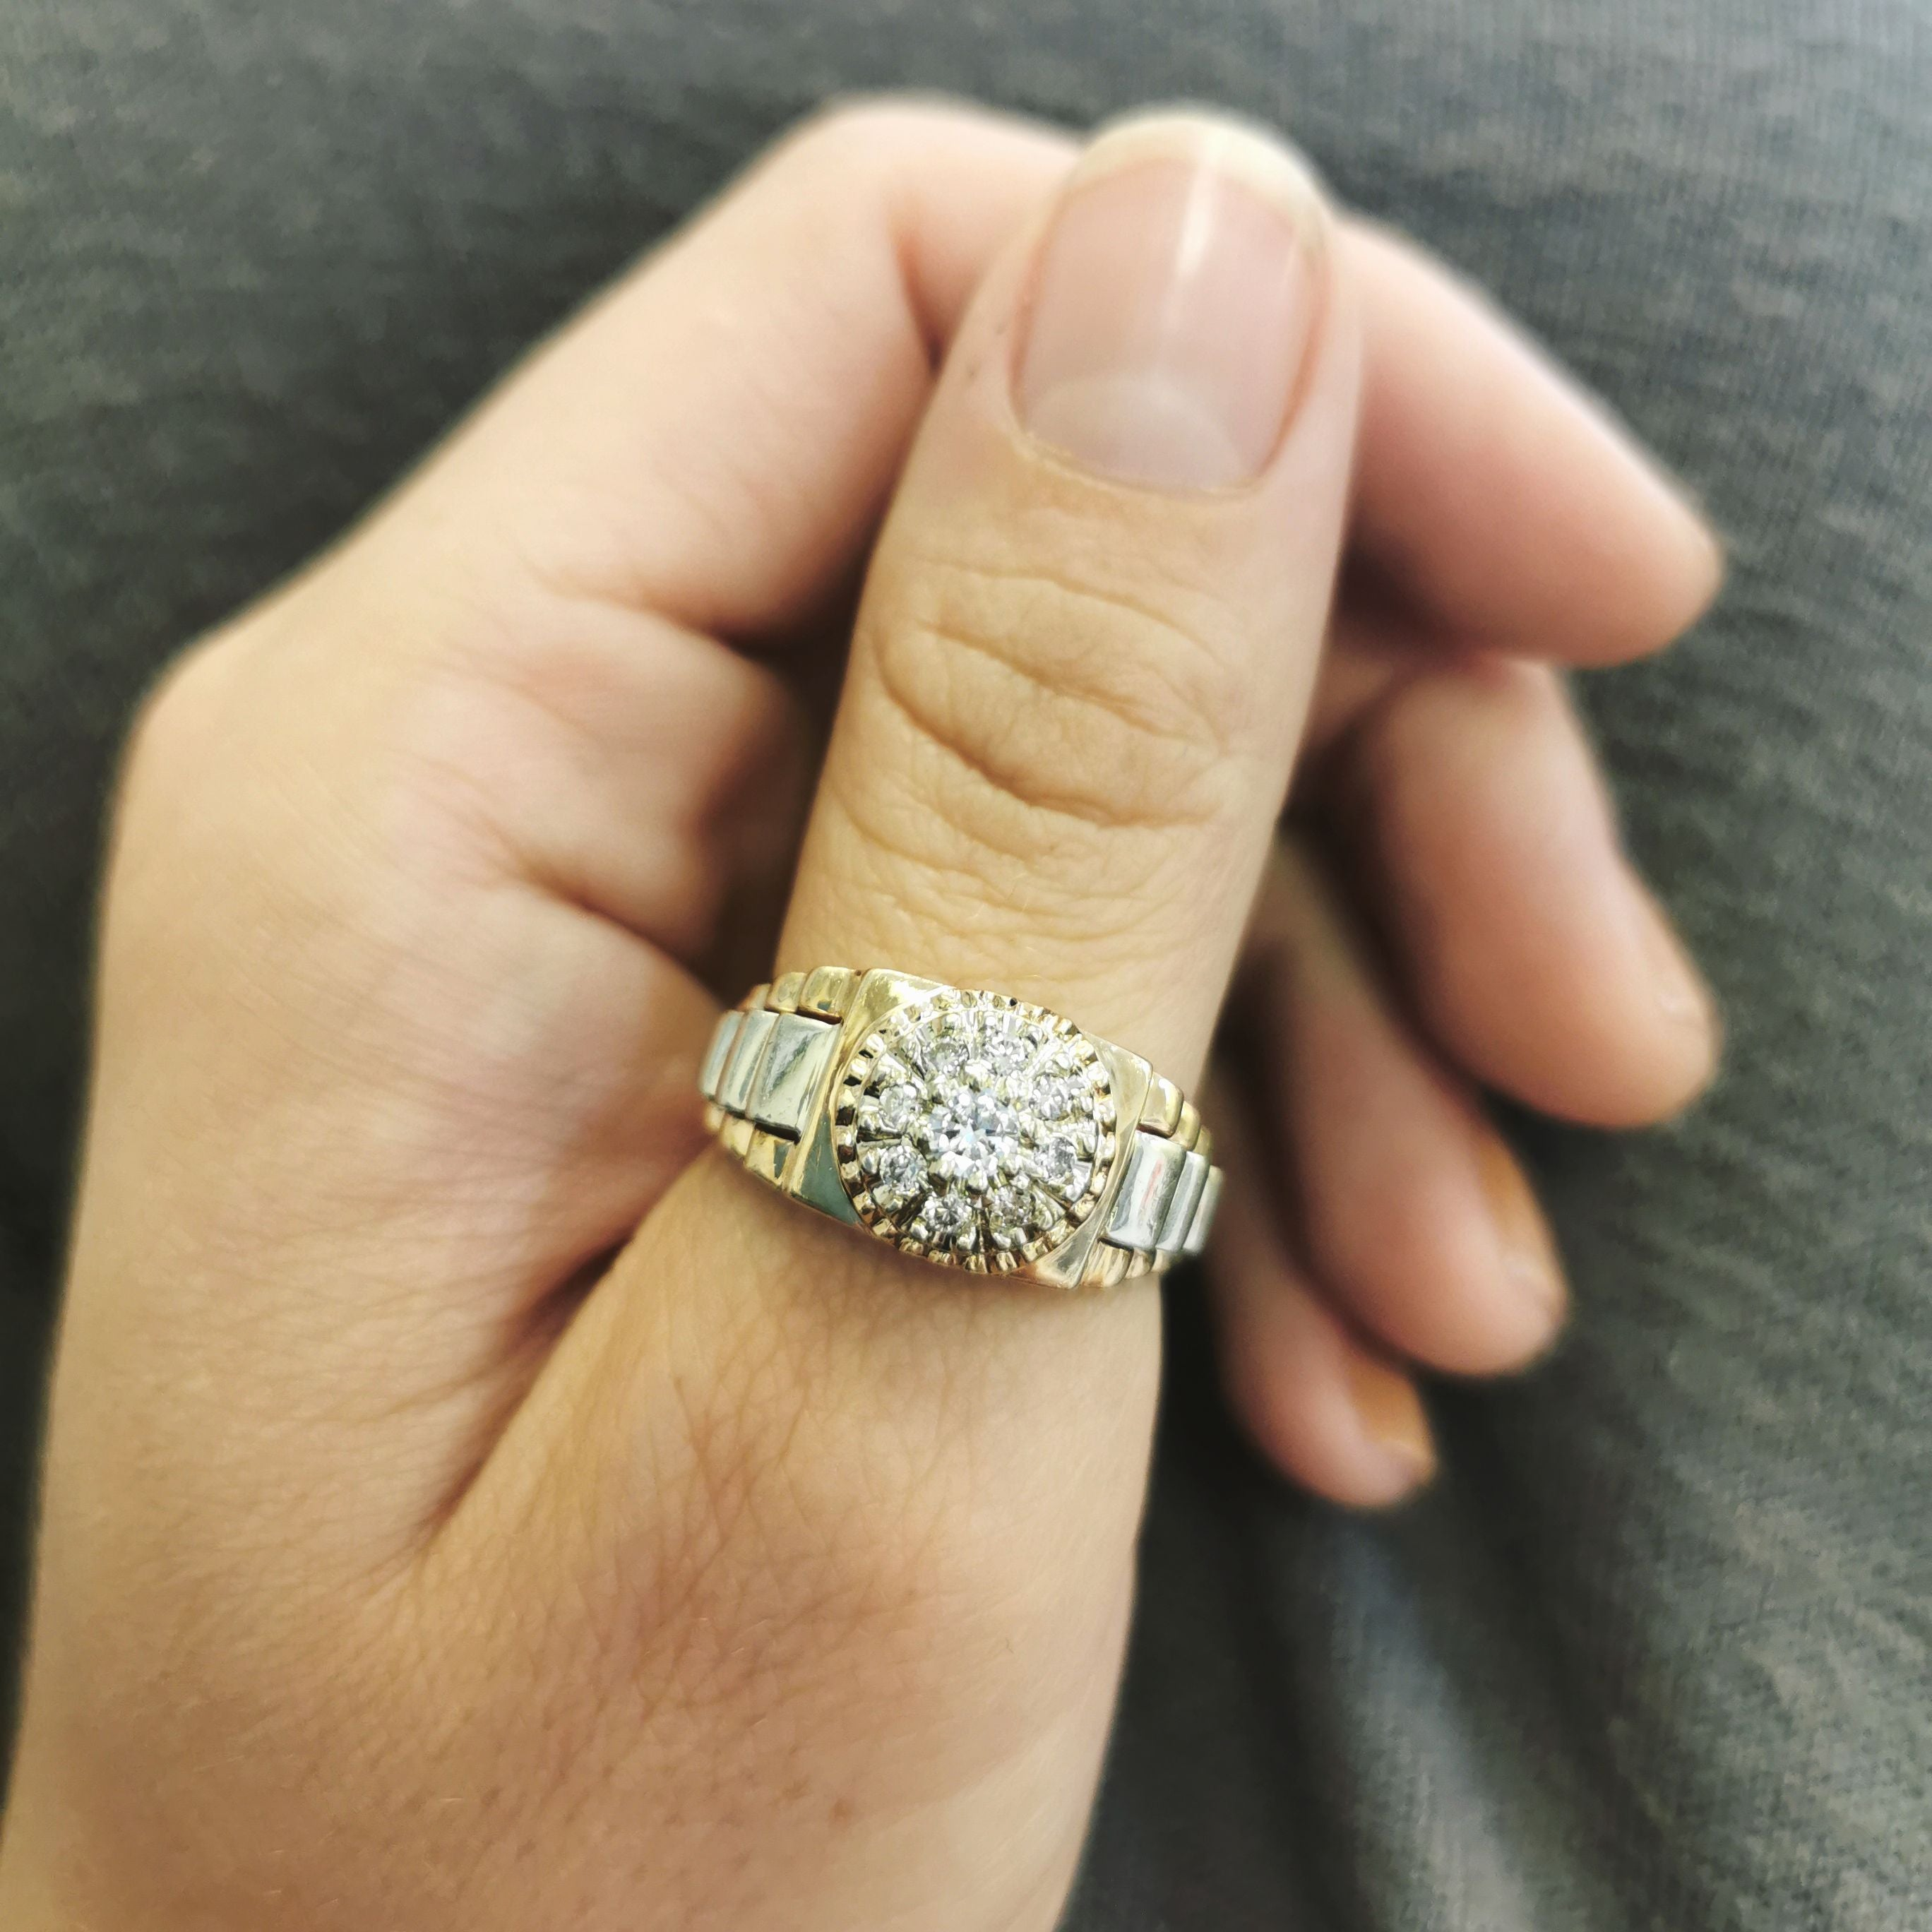 Gold Step Band Diamond Ring | 0.32ctw | SZ 10 |